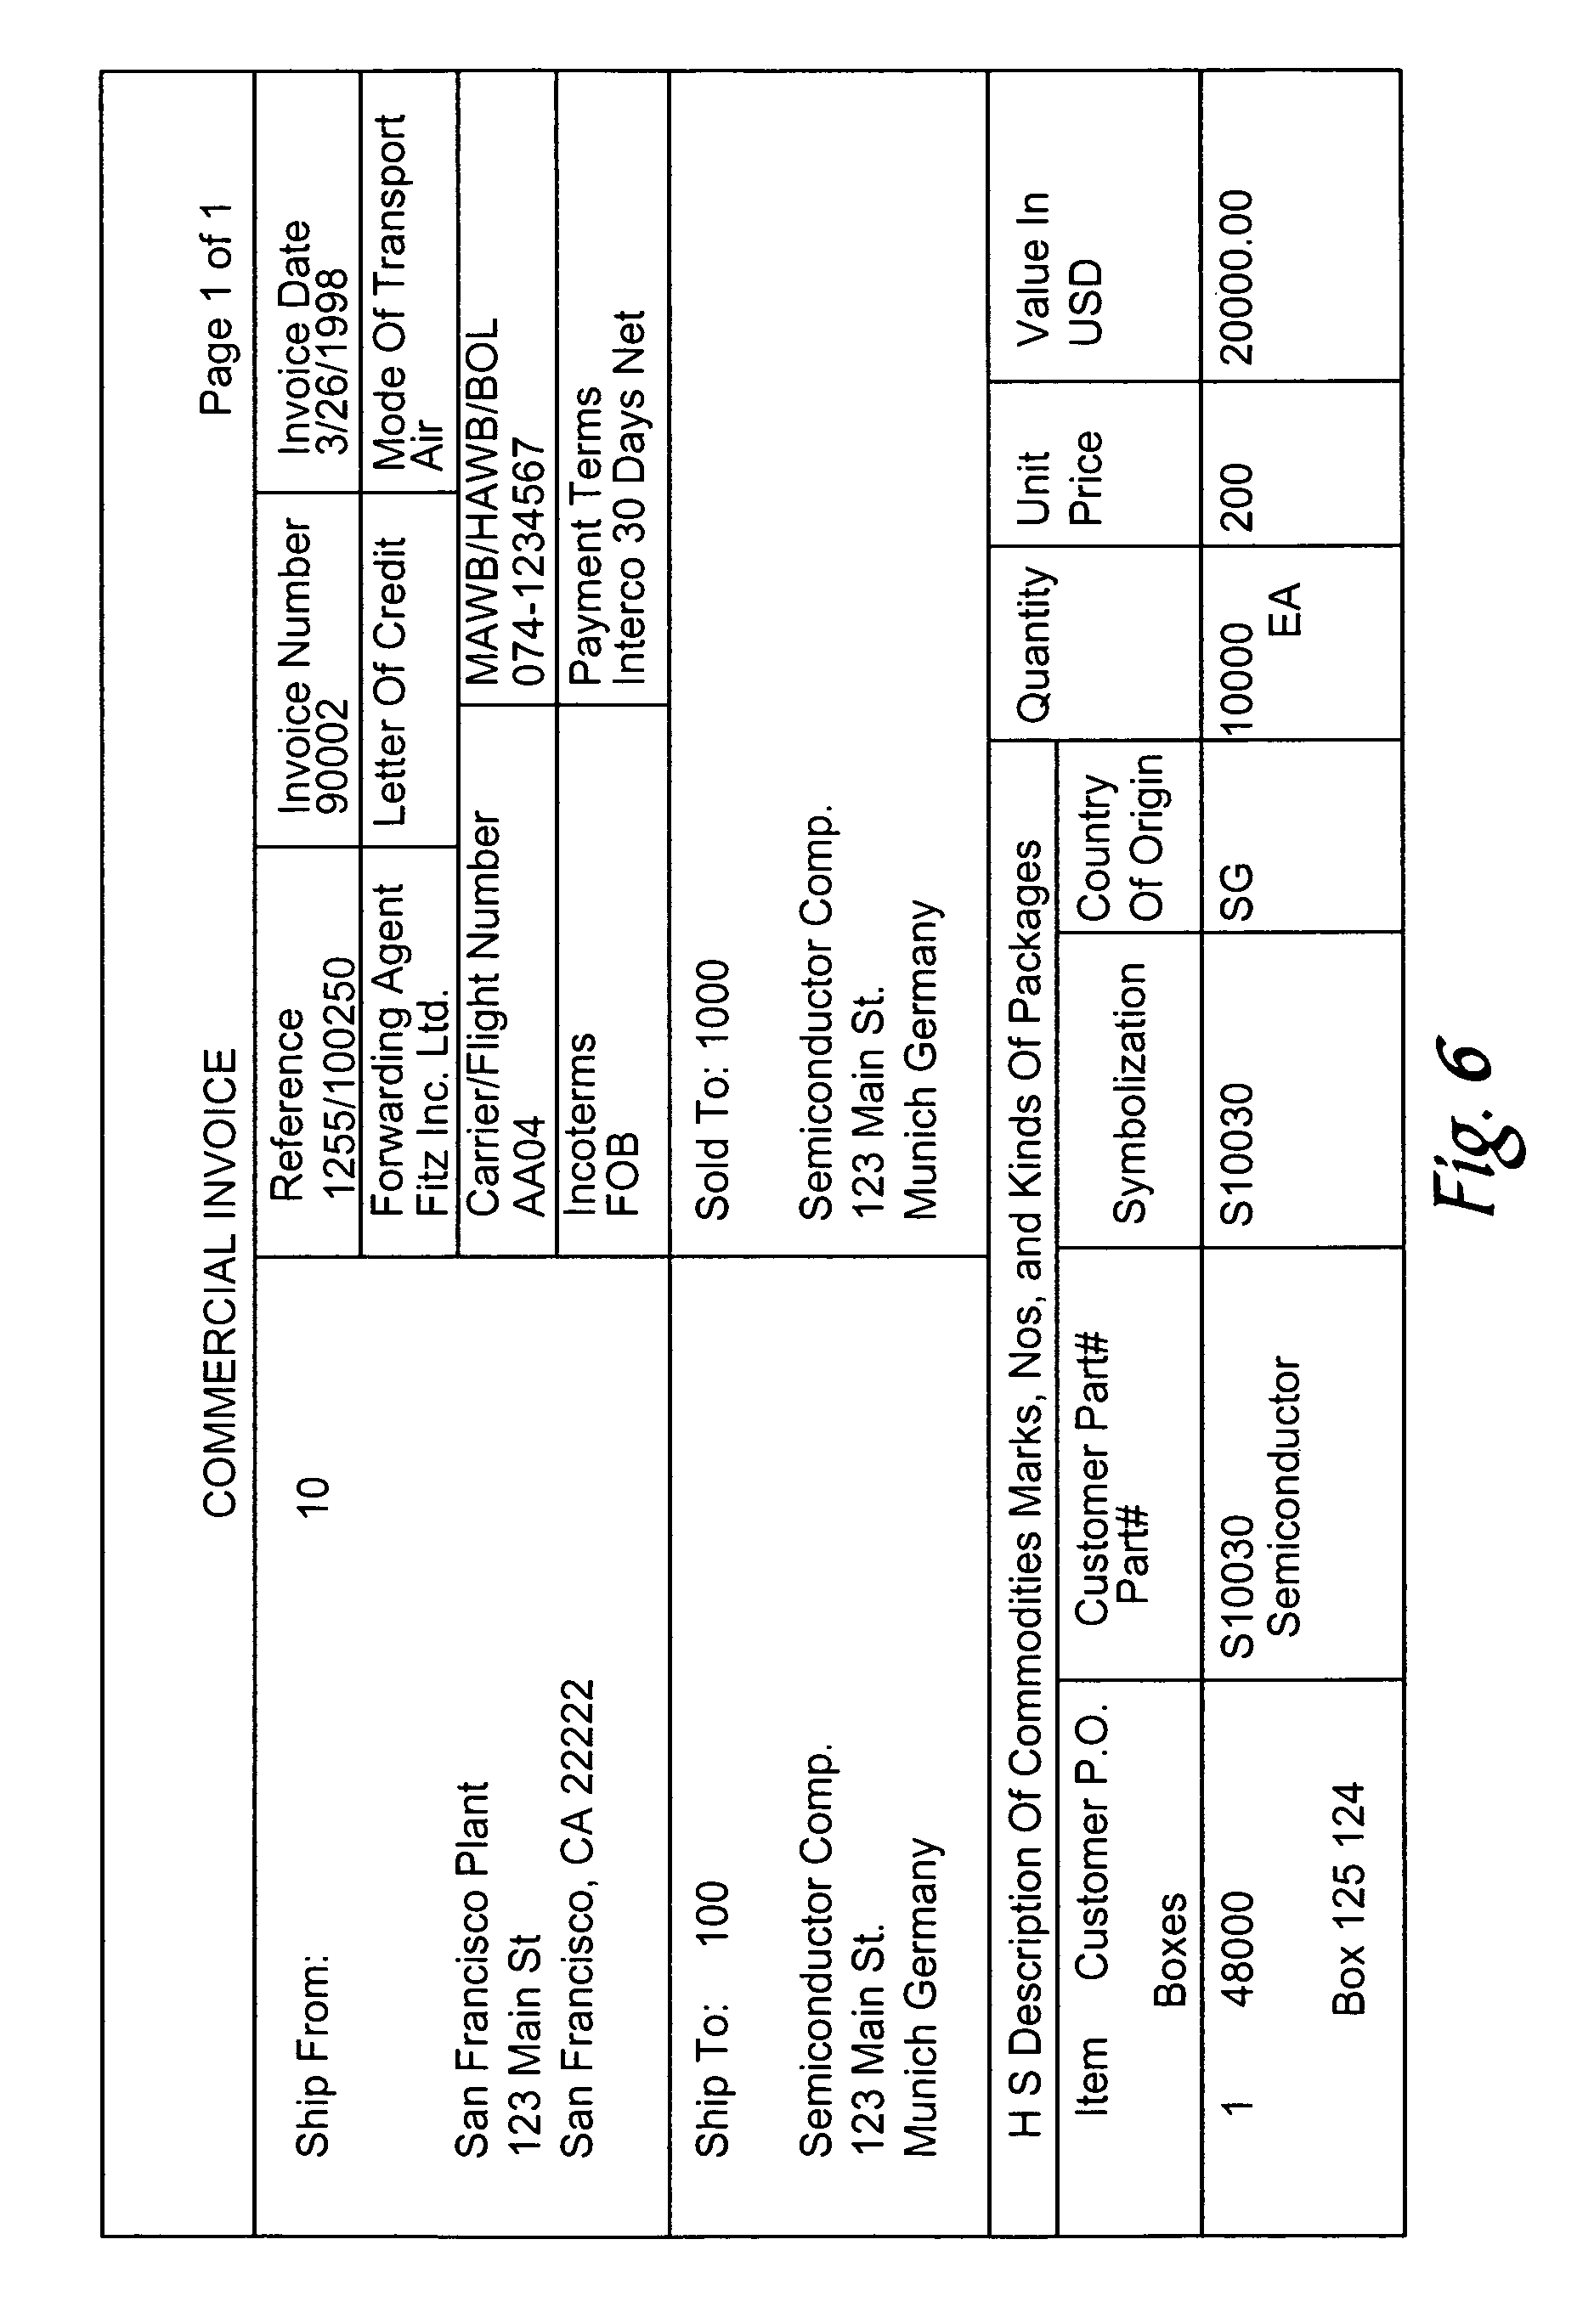 Federal Tax Receipt Pdf Patent Us  Systems Applications And Products In Data  Blank Invoice Template Excel Pdf with Whmcs Invoice Templates Patent Drawing Payment Without Invoice Word